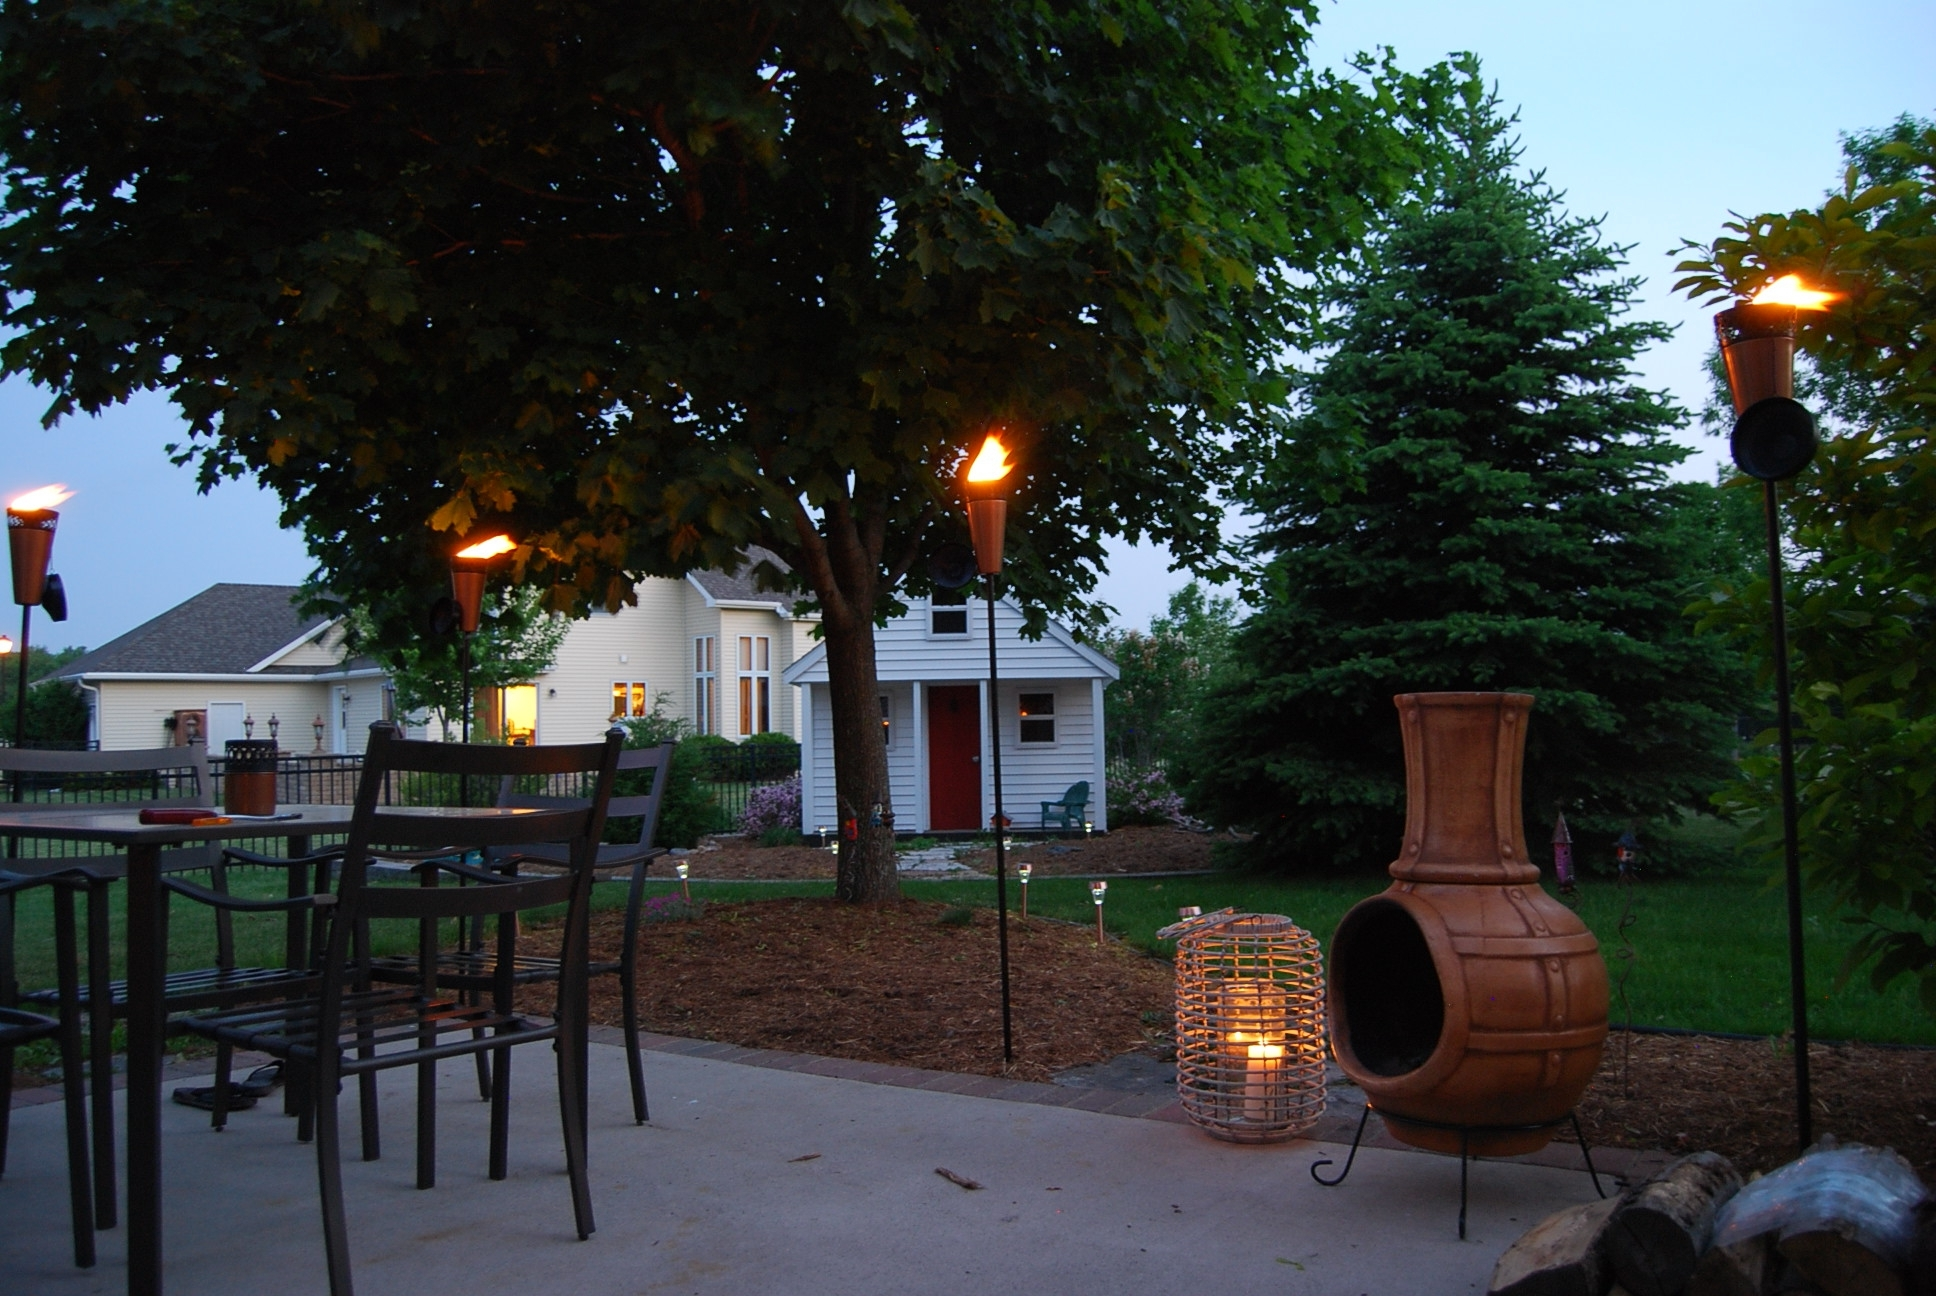 Patio Torches New Propane Tiki Torches For Sale Led Flame Lamp For 2019 Outdoor Tiki Lanterns (View 13 of 20)